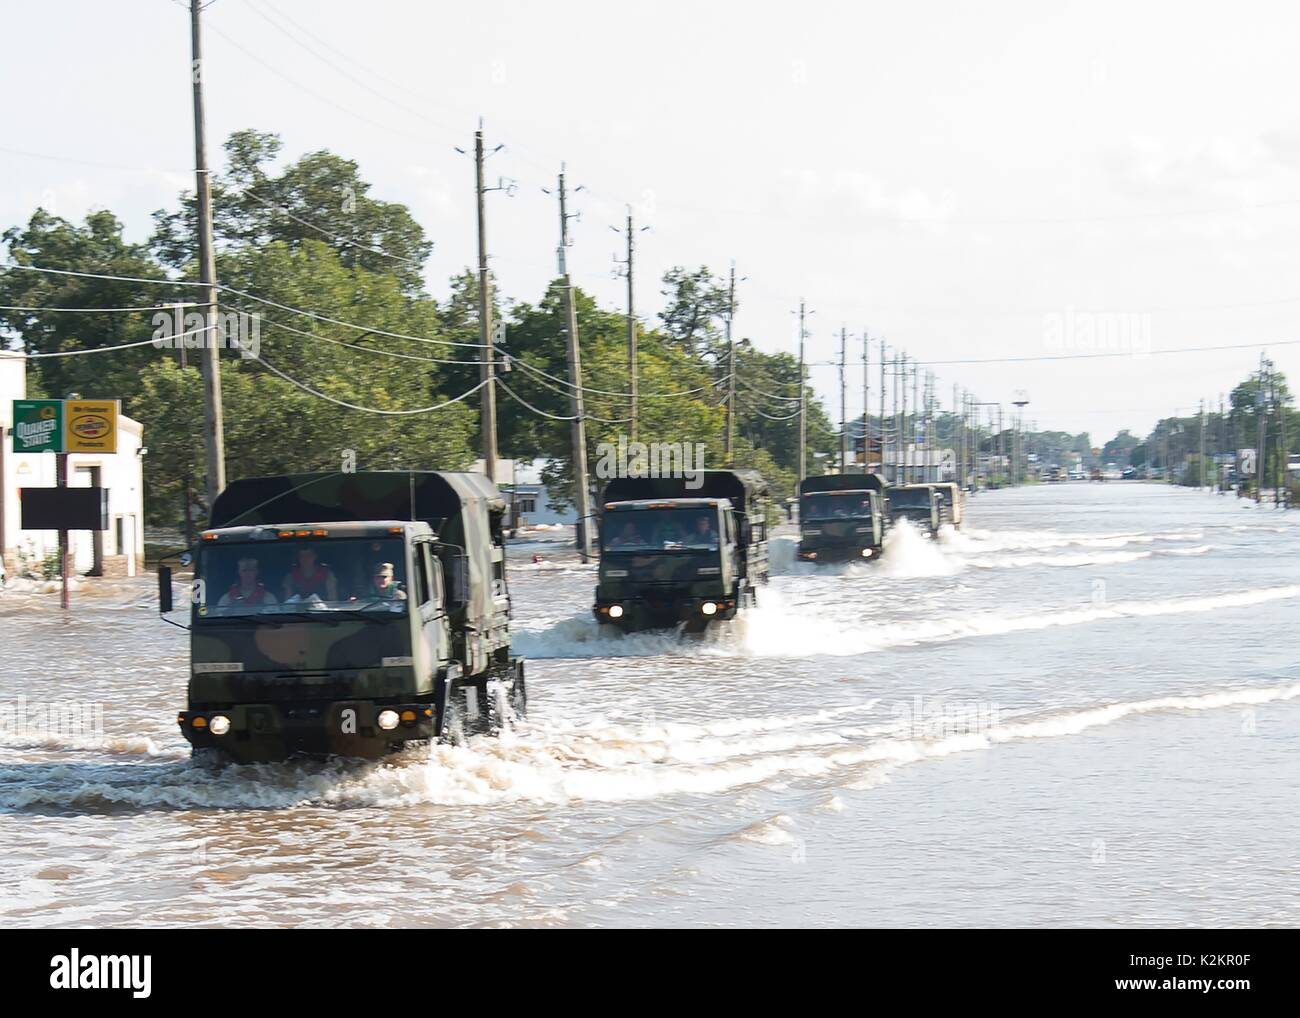 Wharton, United States. 31st Aug, 2017. National Guardsmen drive Light Medium Tactical Vehicles through flood waters as they evacuate stranded residents in the aftermath of Hurricane Harvey August 31, 2017 in Wharton, Texas. Credit: Planetpix/Alamy Live News - Stock Image